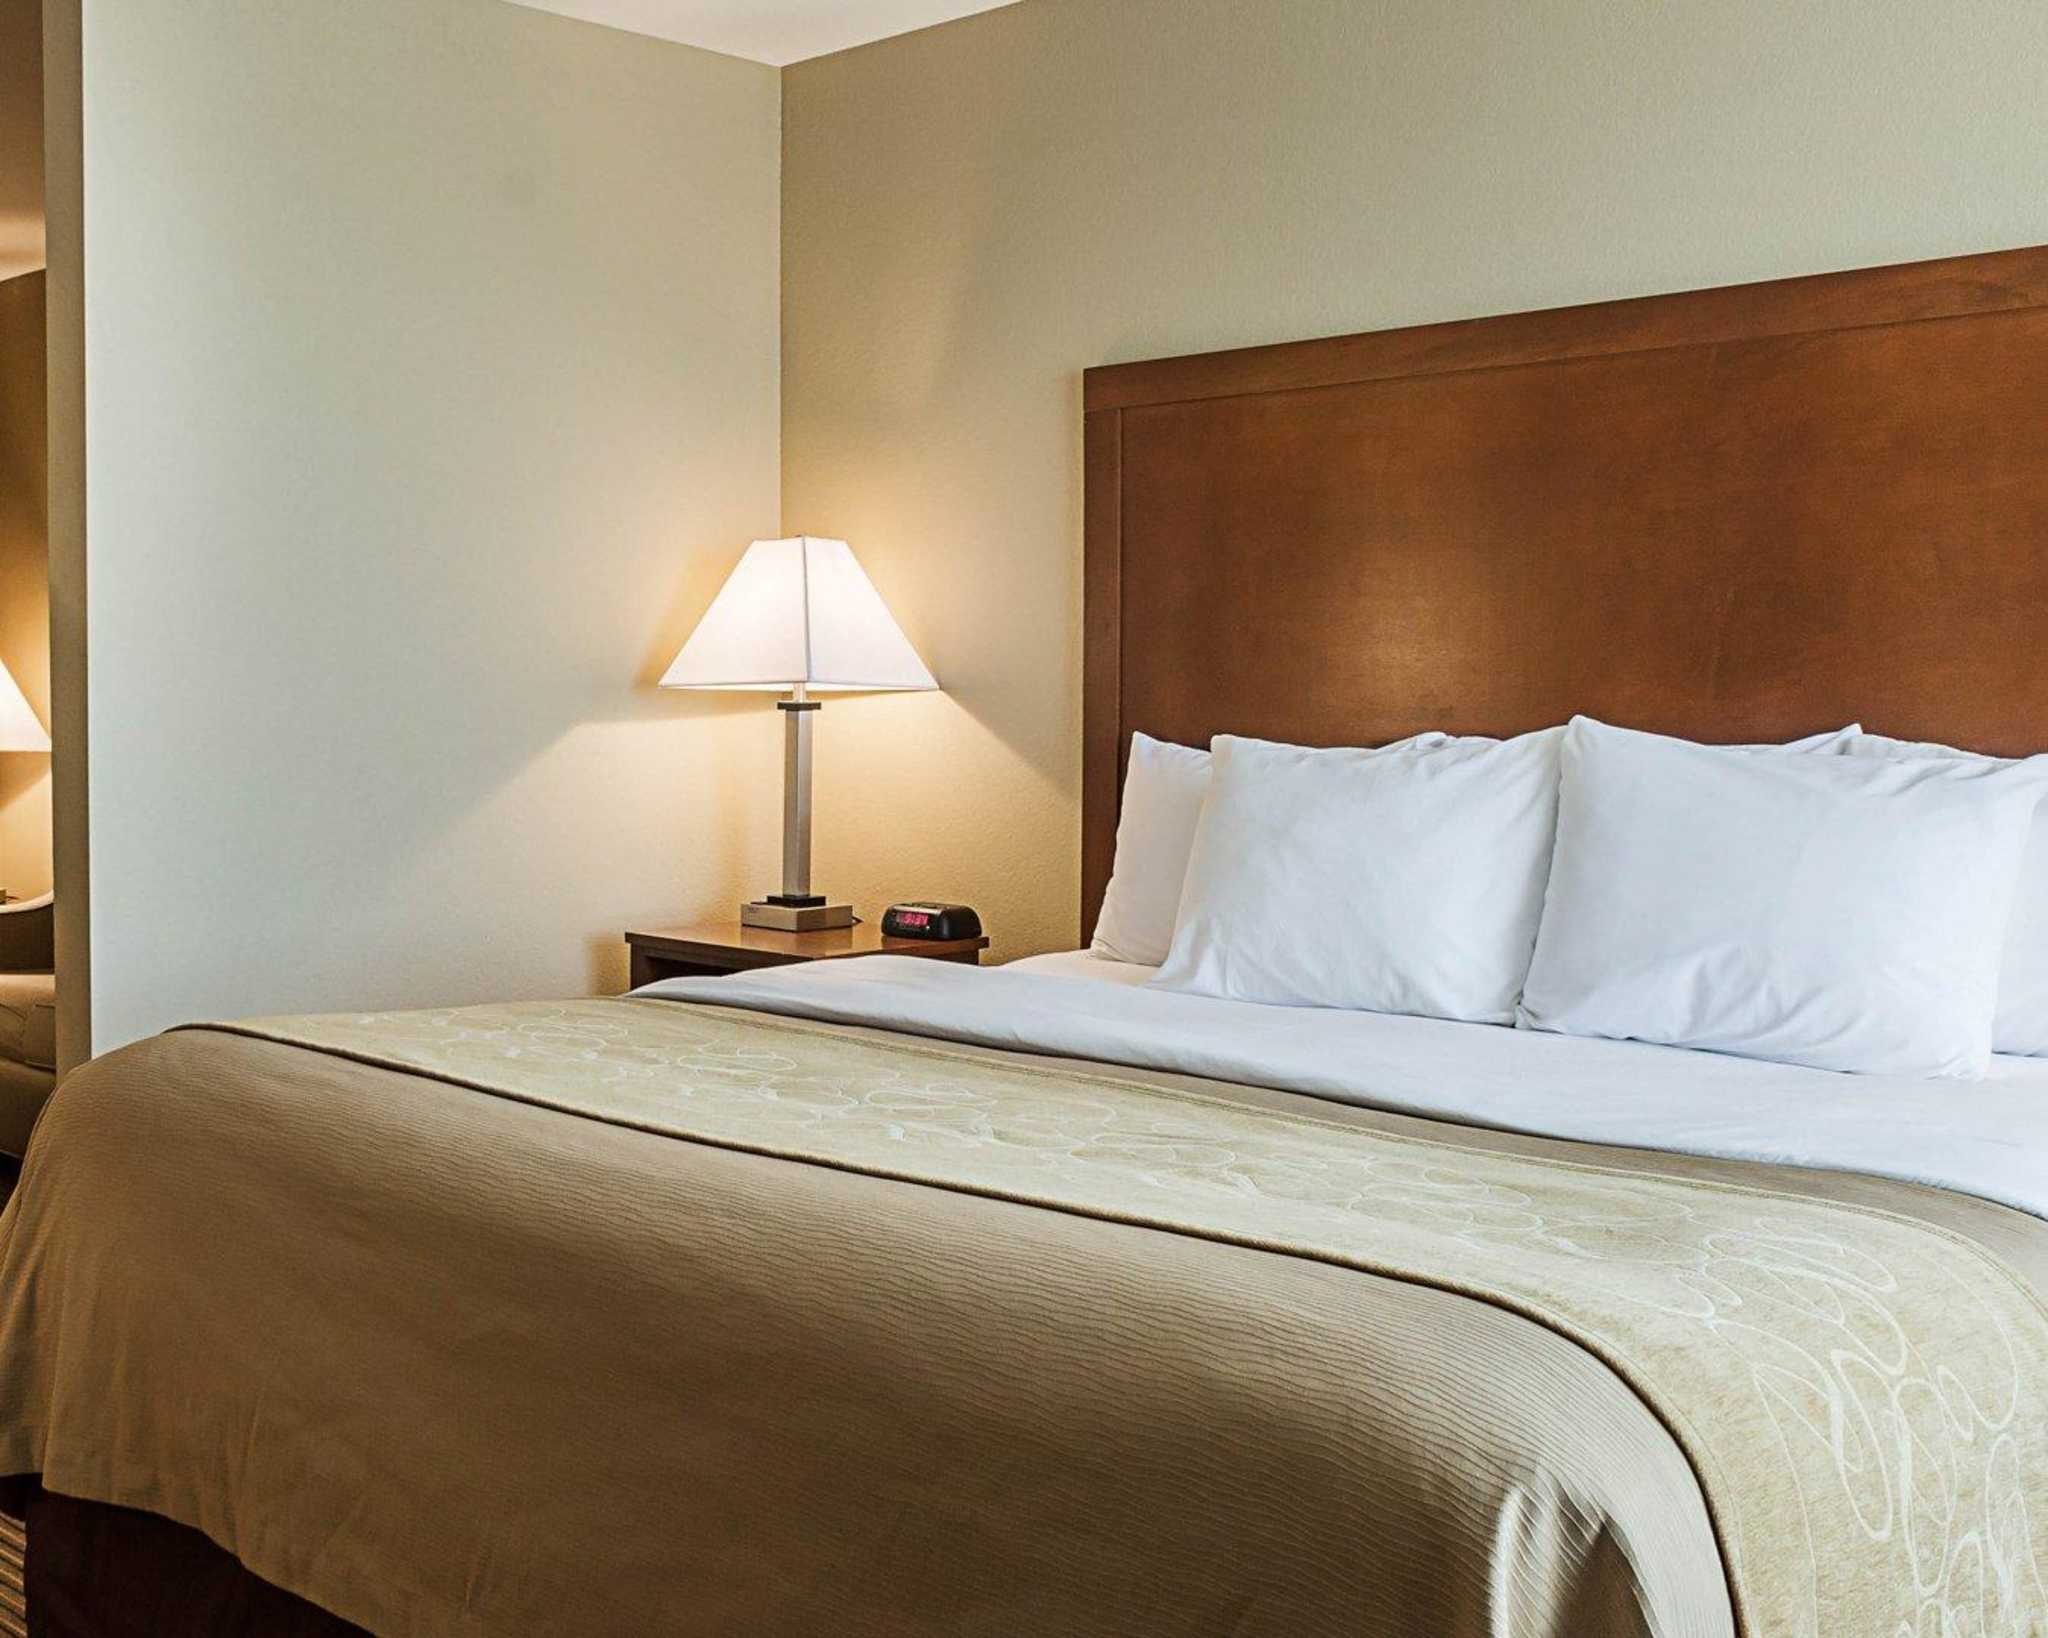 Comfort Inn Amp Suites Watford City Nd Business Directory